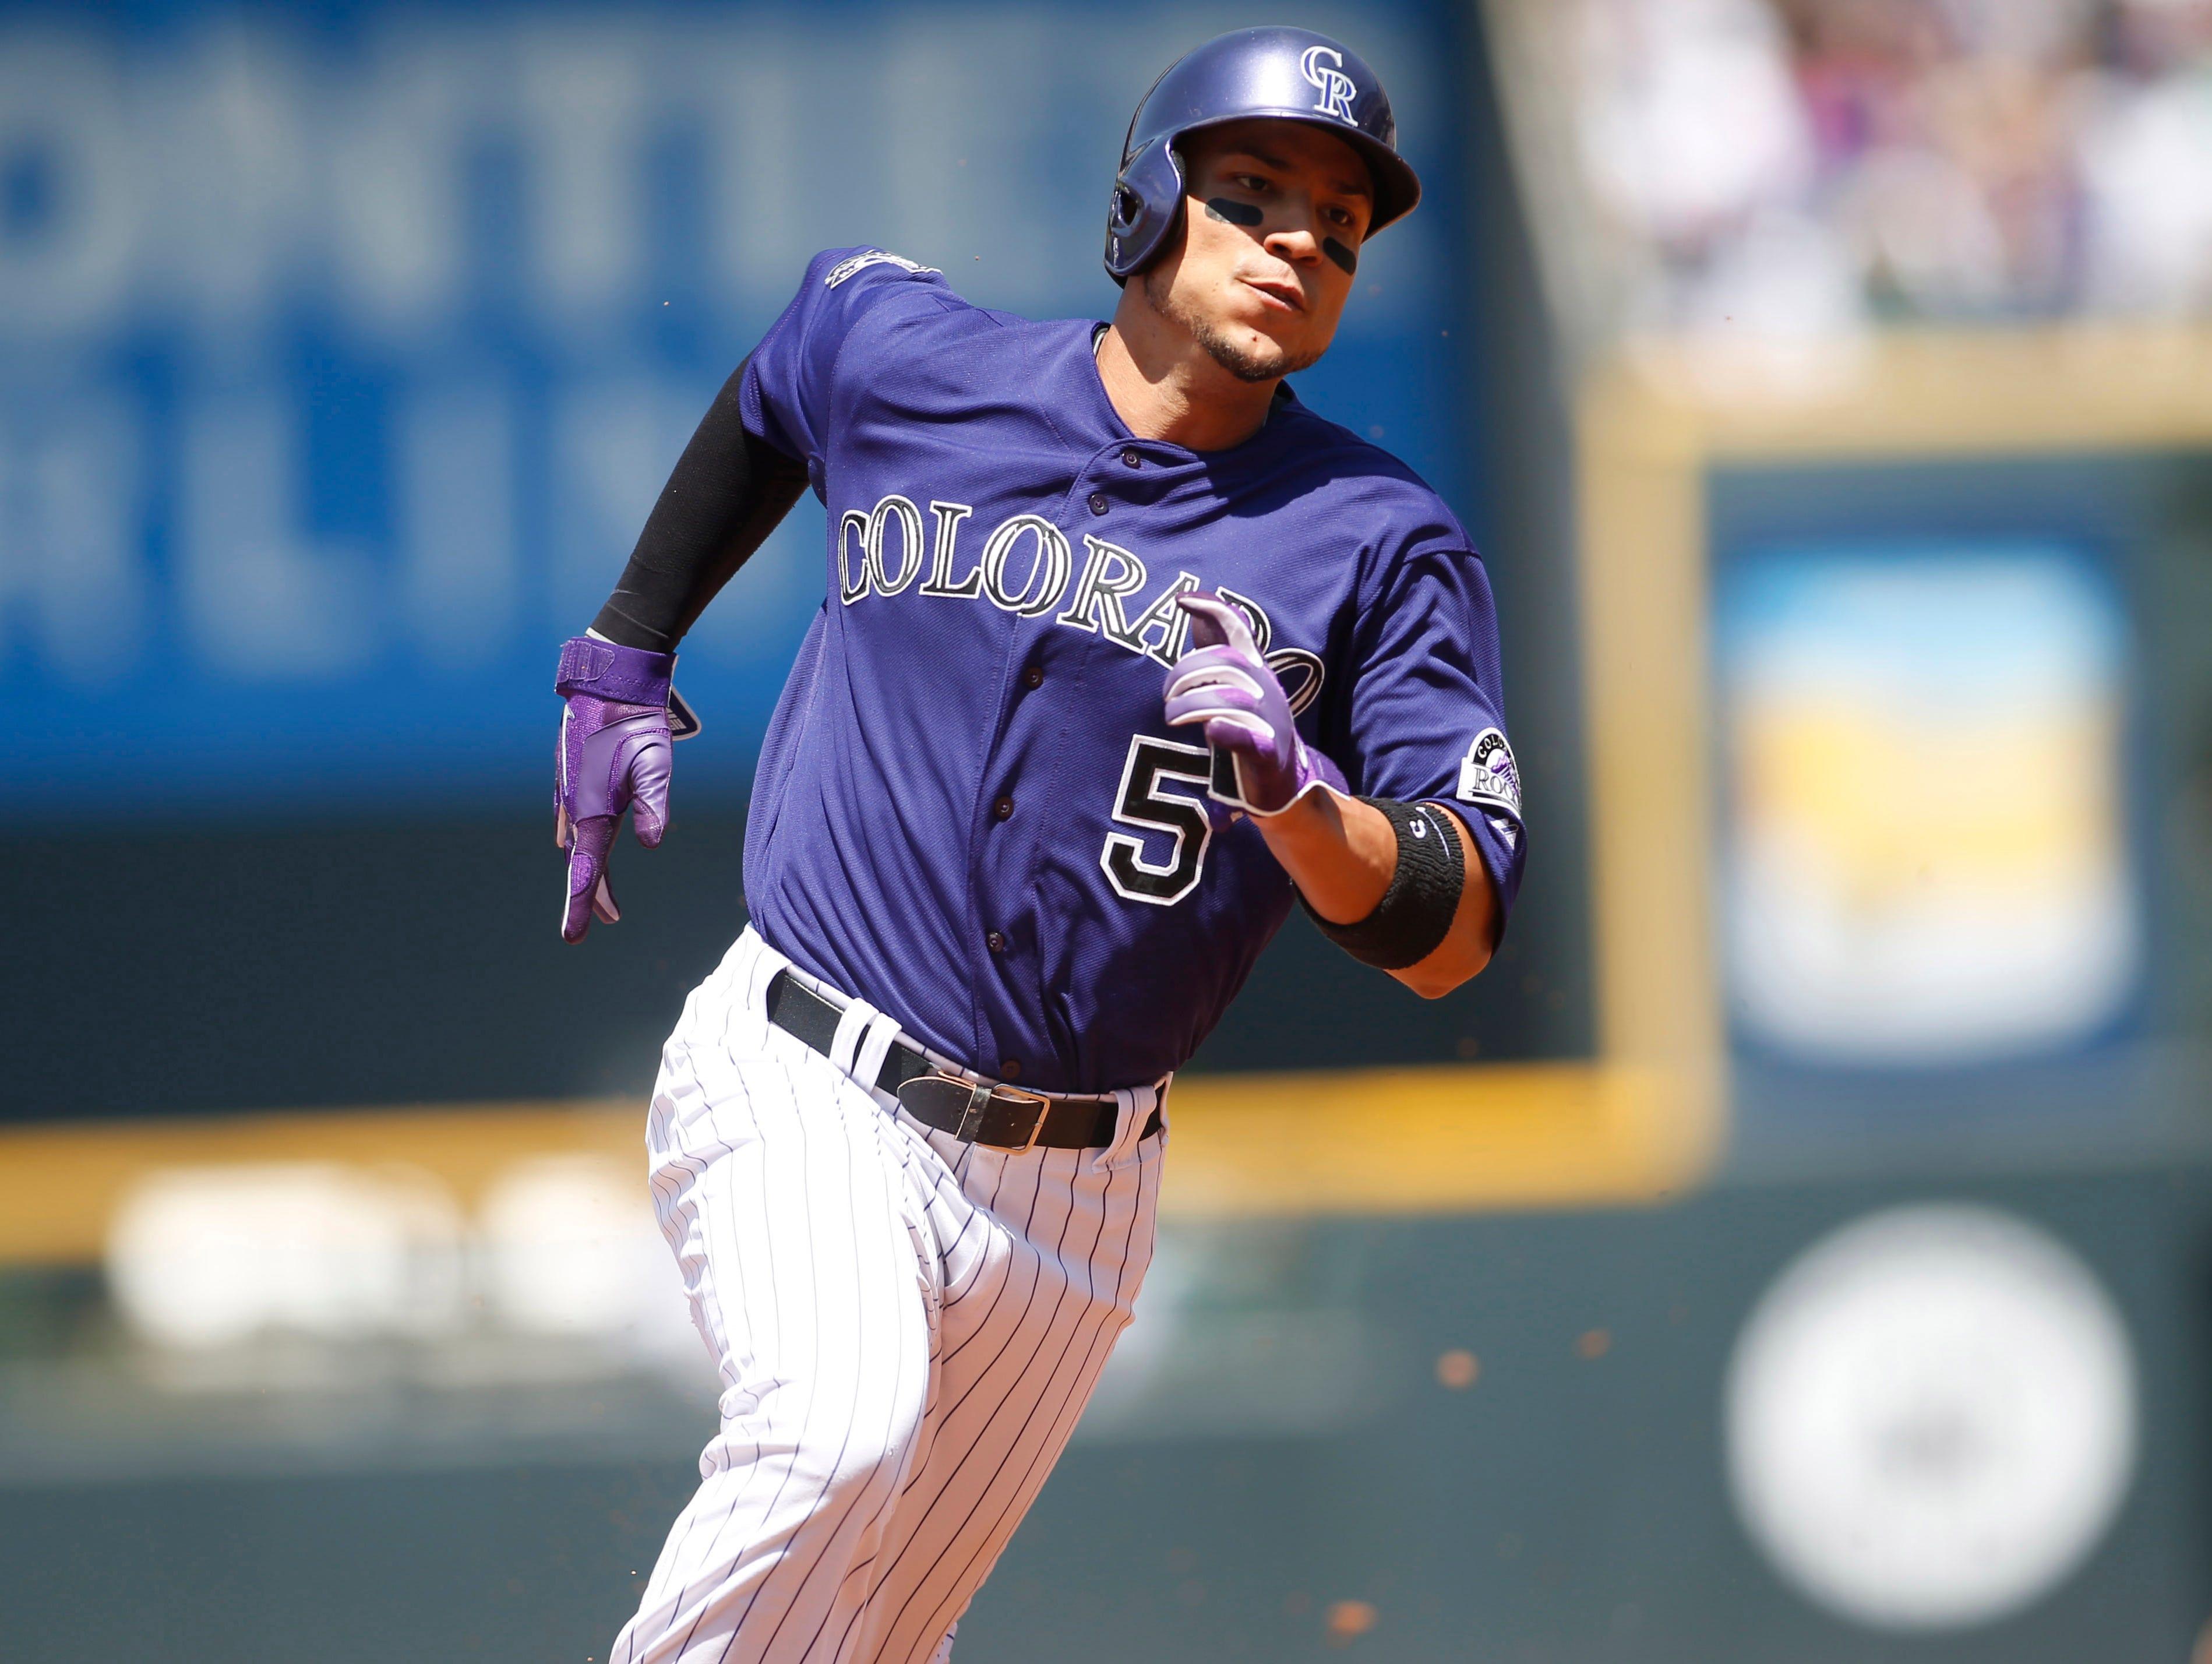 Aug. 7: The Rockies place left fielder Carlos Gonzalez on the 15-day DL with a sprained right middle finger.